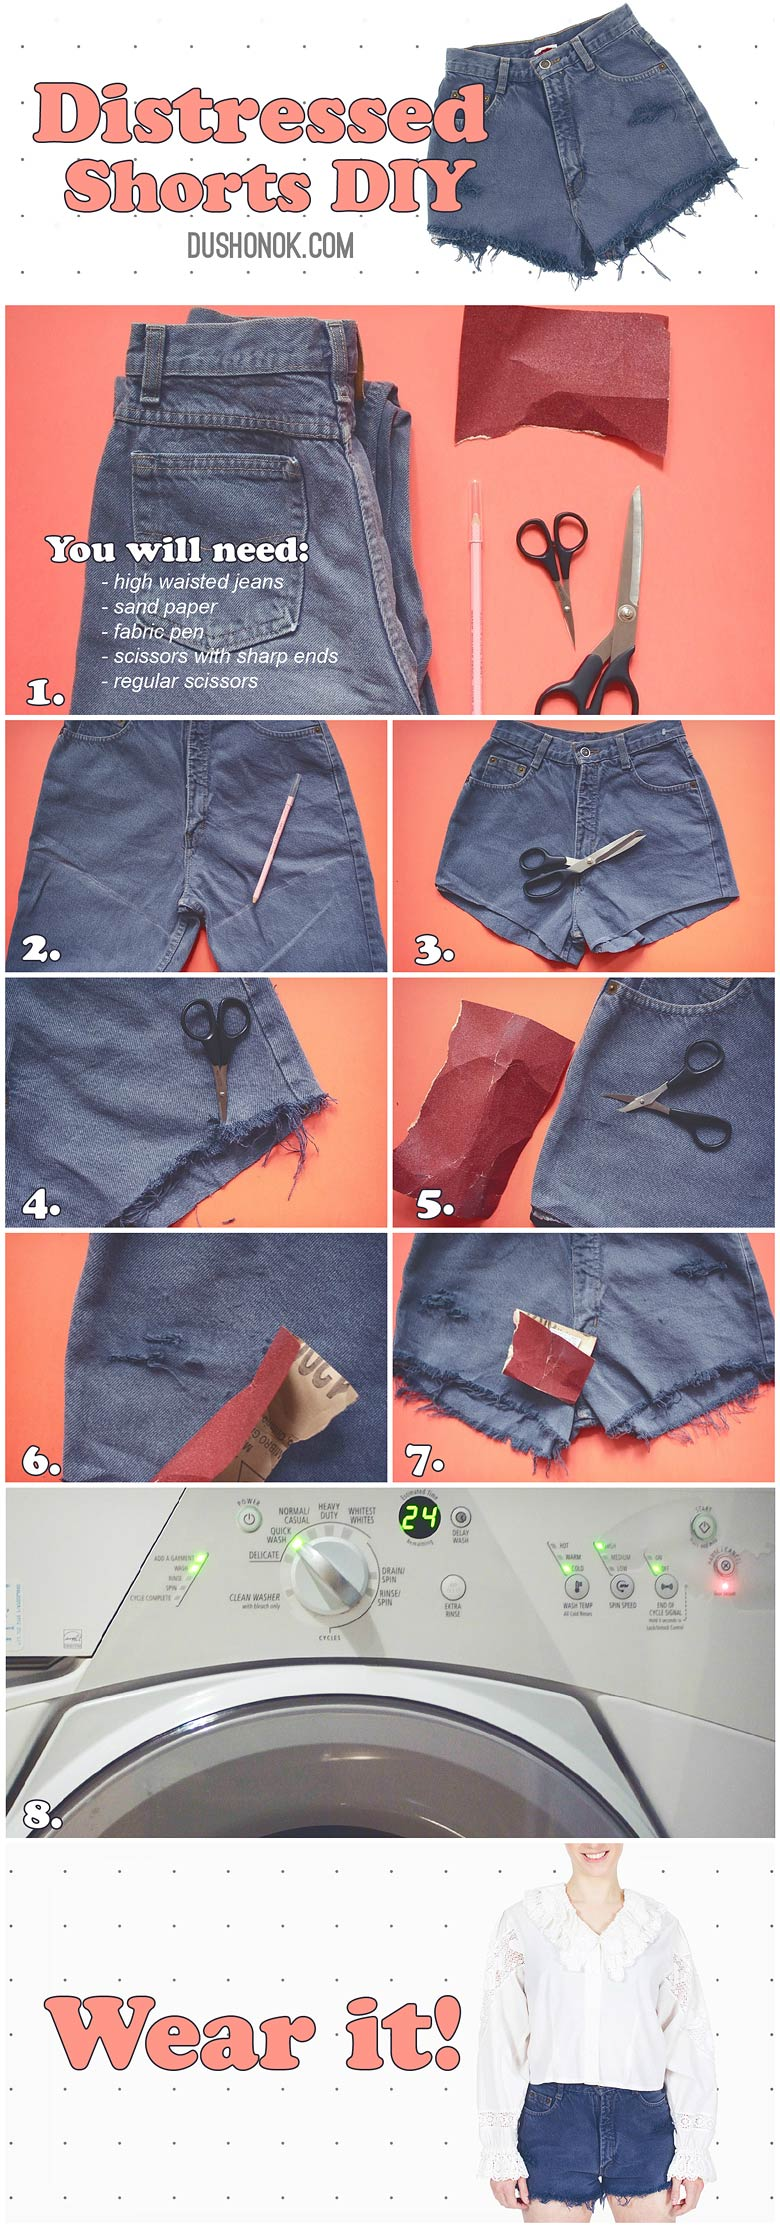 distressed denim cut off high waisted shorts diy: making summer